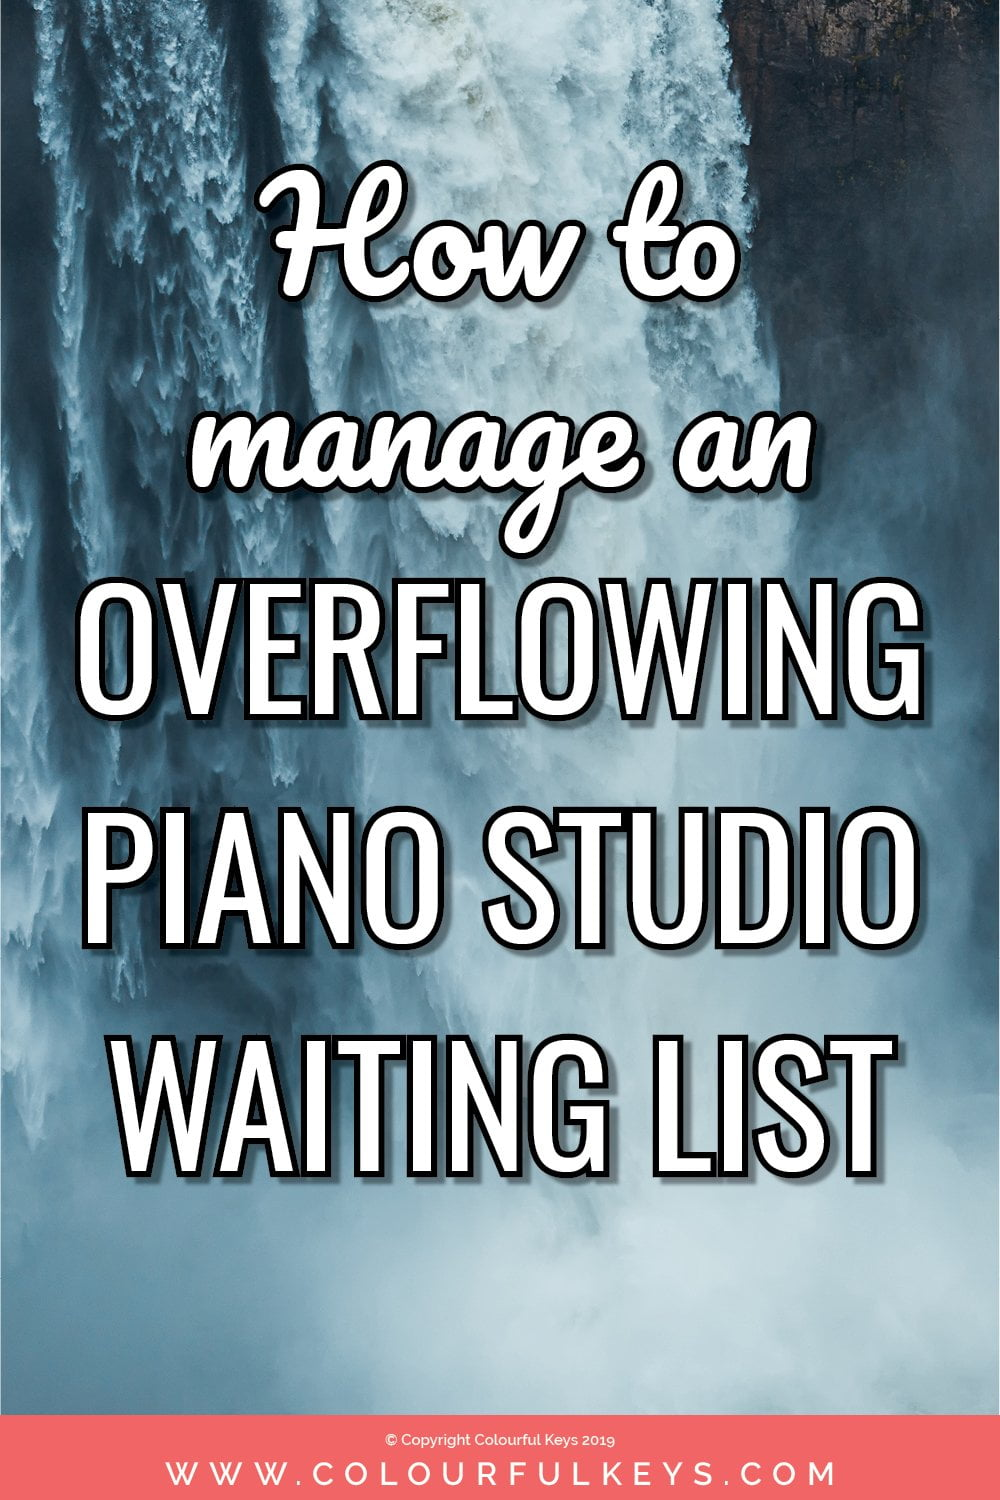 What to do with an overflowing music studio waiting list and how to bring extra students into your piano studio